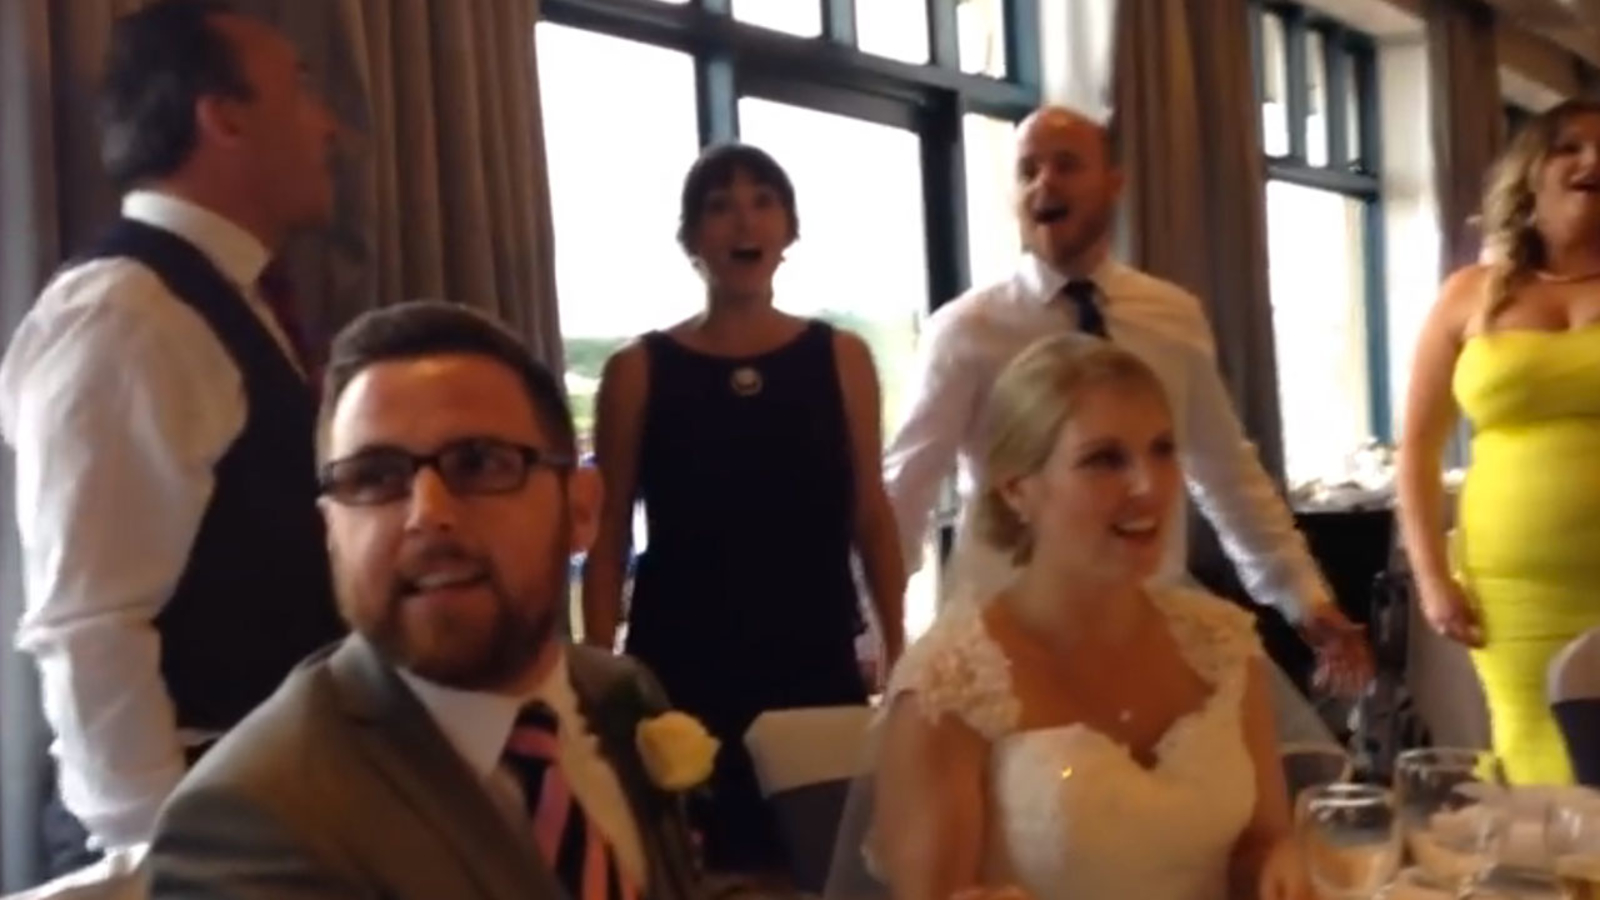 Wedding Goes Broadway With Seasons Of Love Flashmob From Rent 6abc Philadelphia,Wedding Guest Purple Plus Size Dress